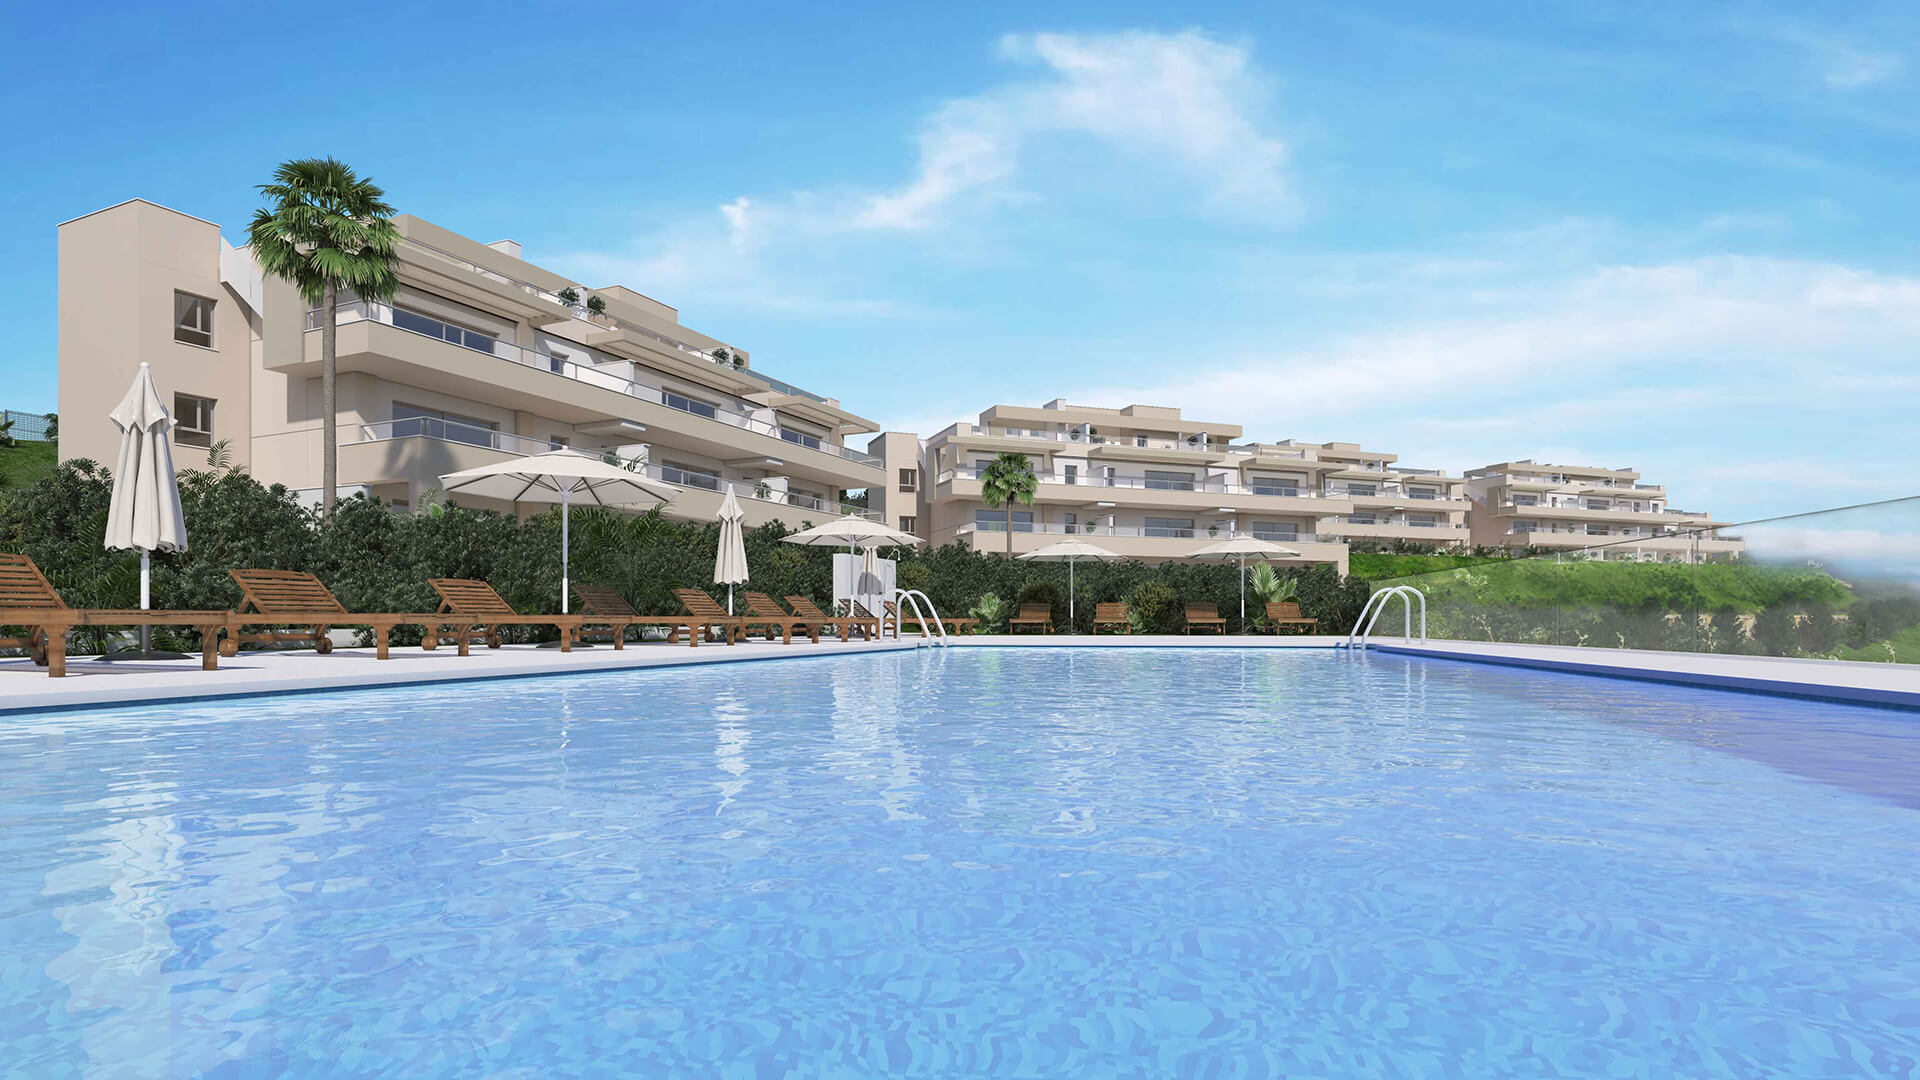 Harmony - New Homes For Sale in La Cala